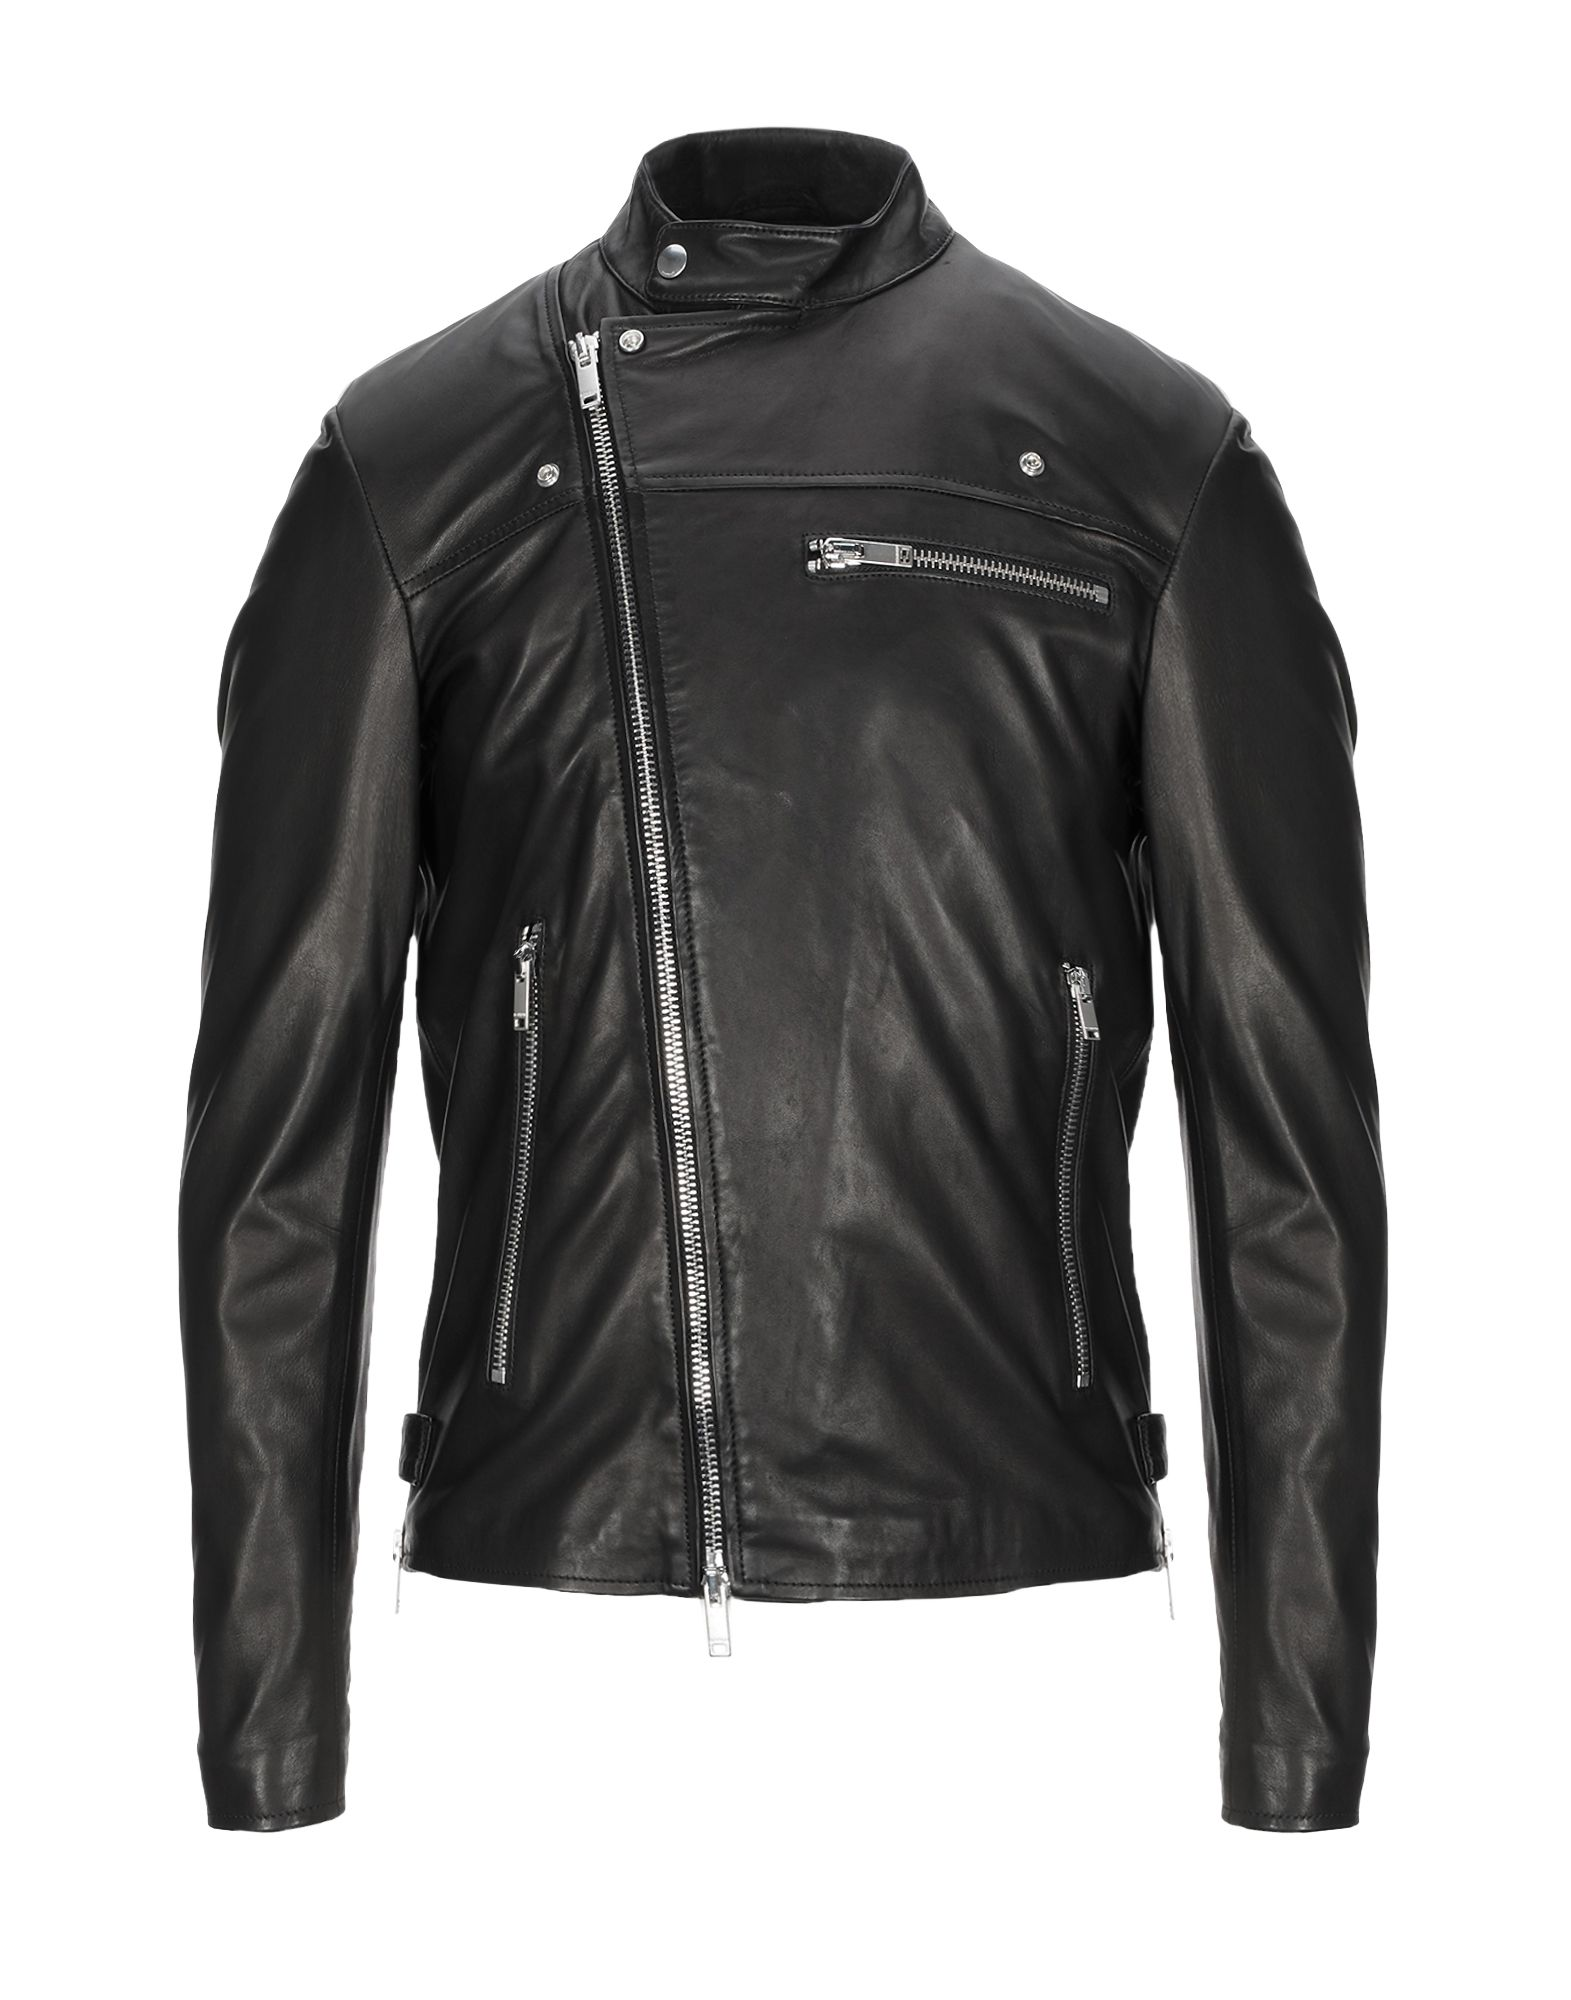 DONDUP Jackets. leather, logo, basic solid color, single-breasted, zip, lapel collar, multipockets, long sleeves, fully lined, contains non-textile parts of animal origin. 100% Lambskin